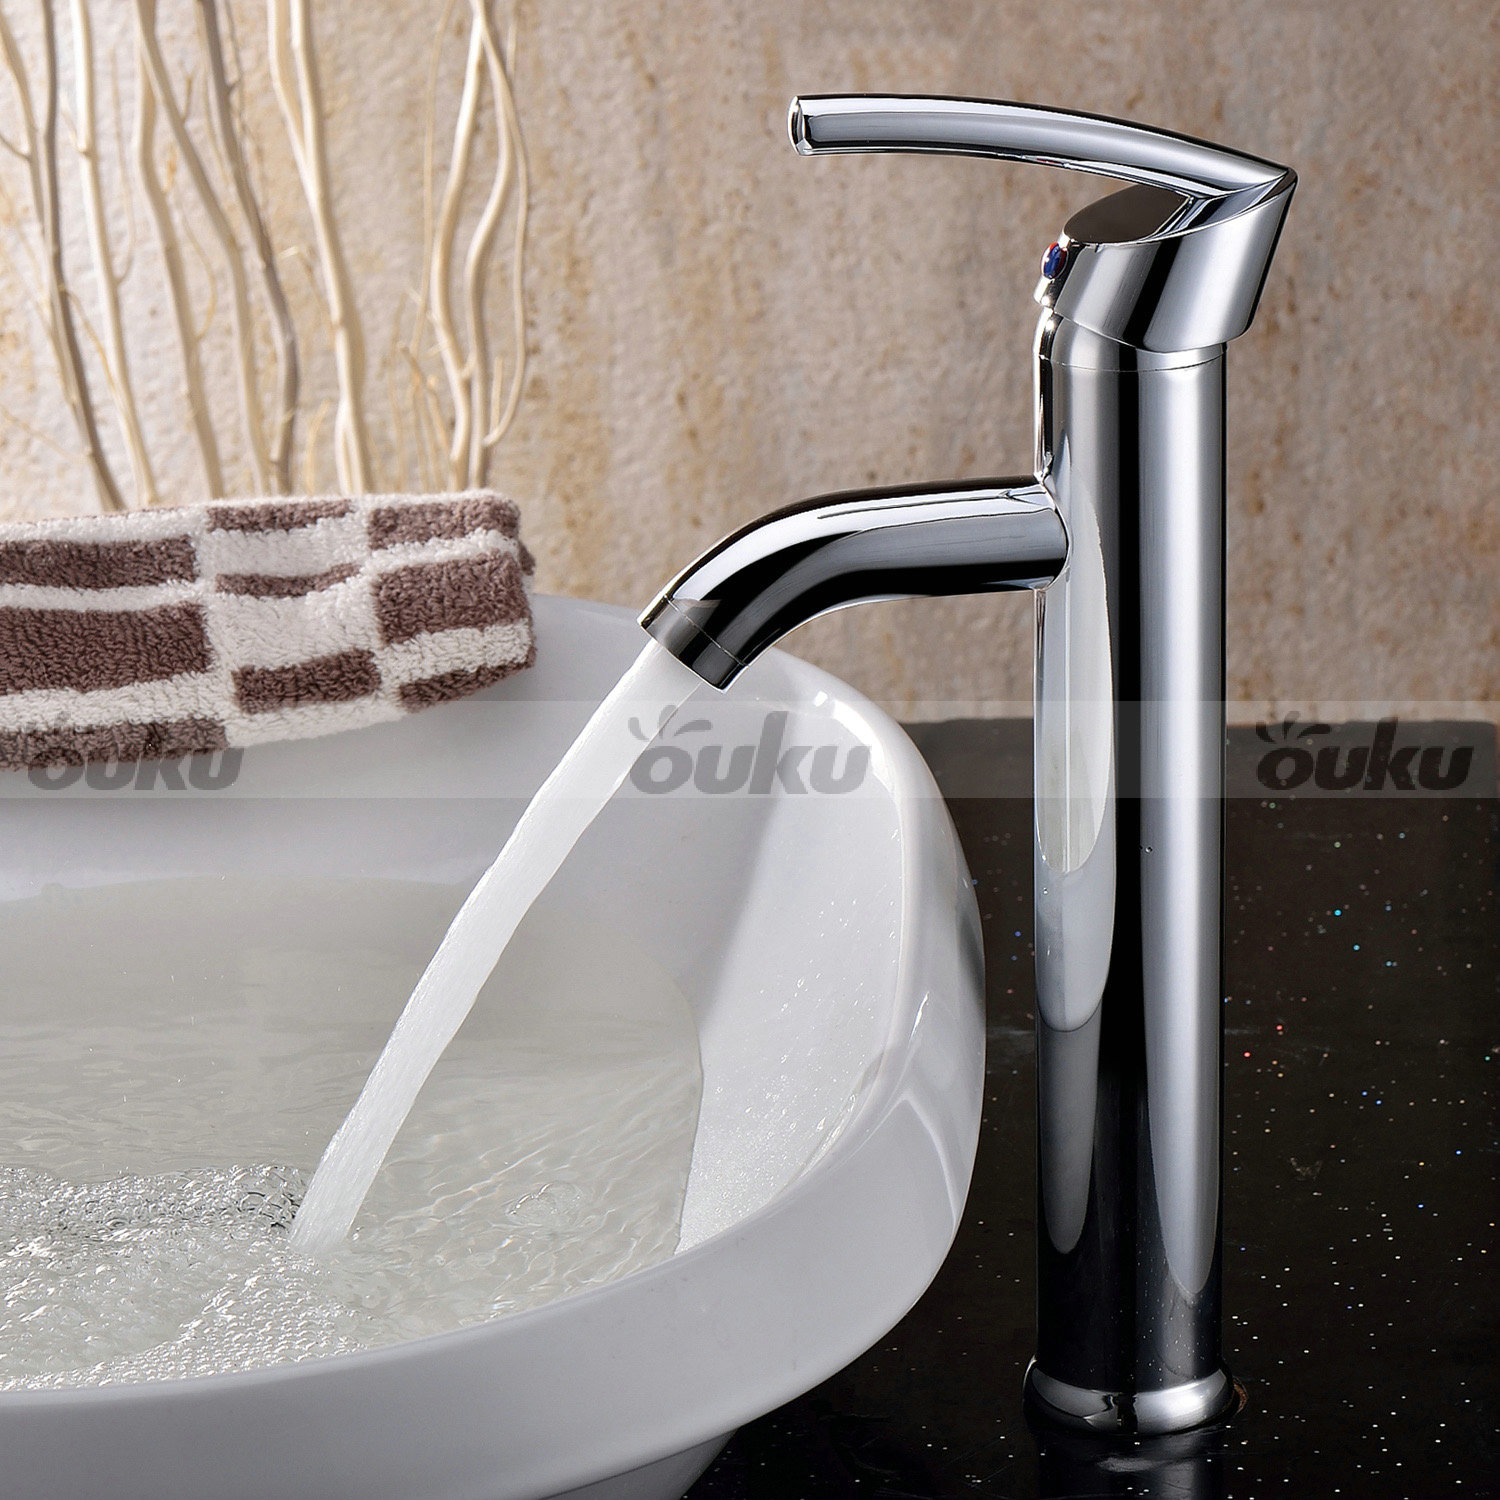 Elegant Bathroom Sinks: Elegant Chrome Brass Bathroom Sink Faucet Countertop